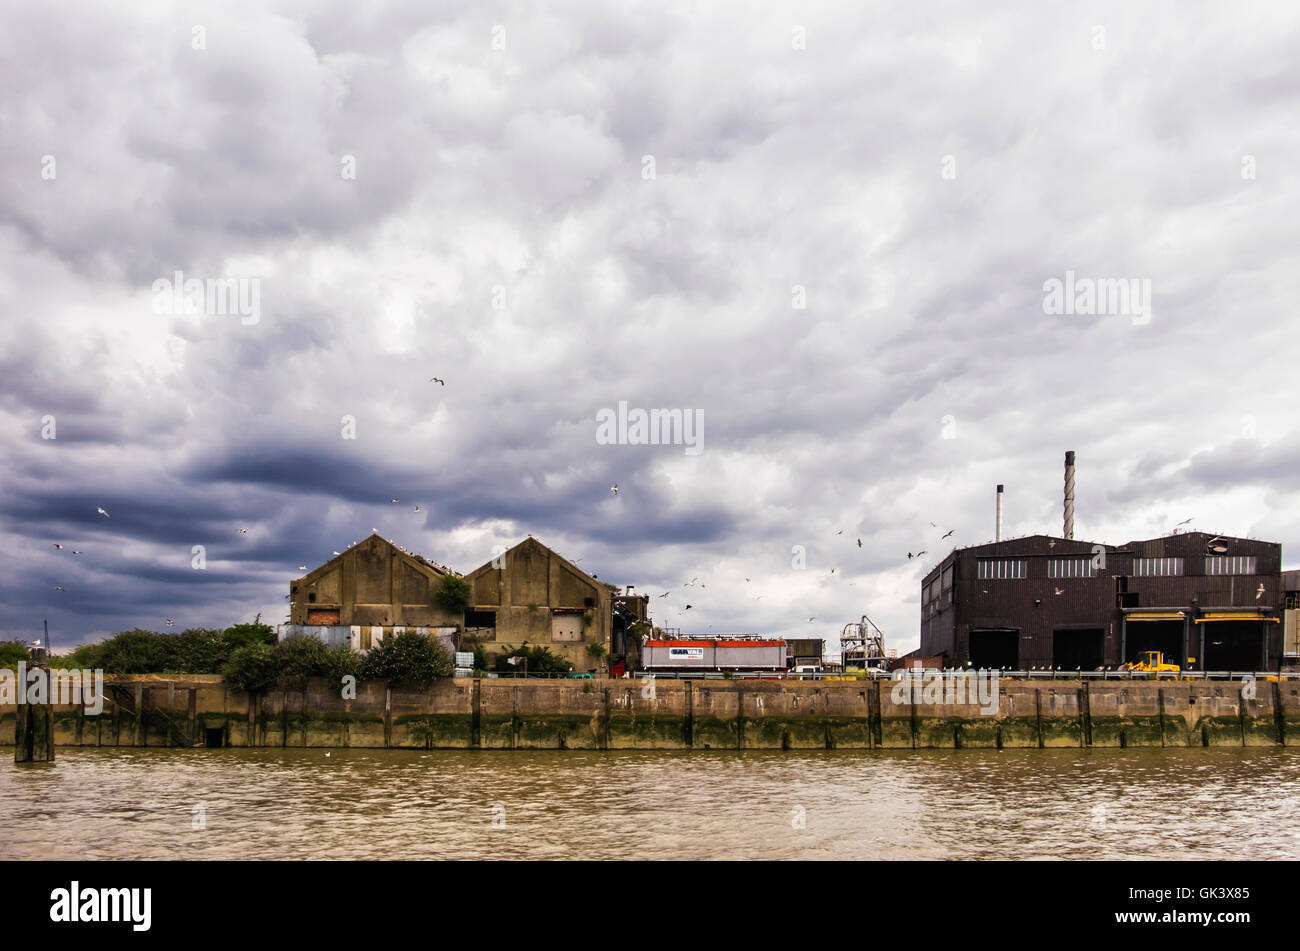 London Docklands. Old warehouse buildings along river Thames with black stormy, cloudy sky, Sivertown - Stock Image